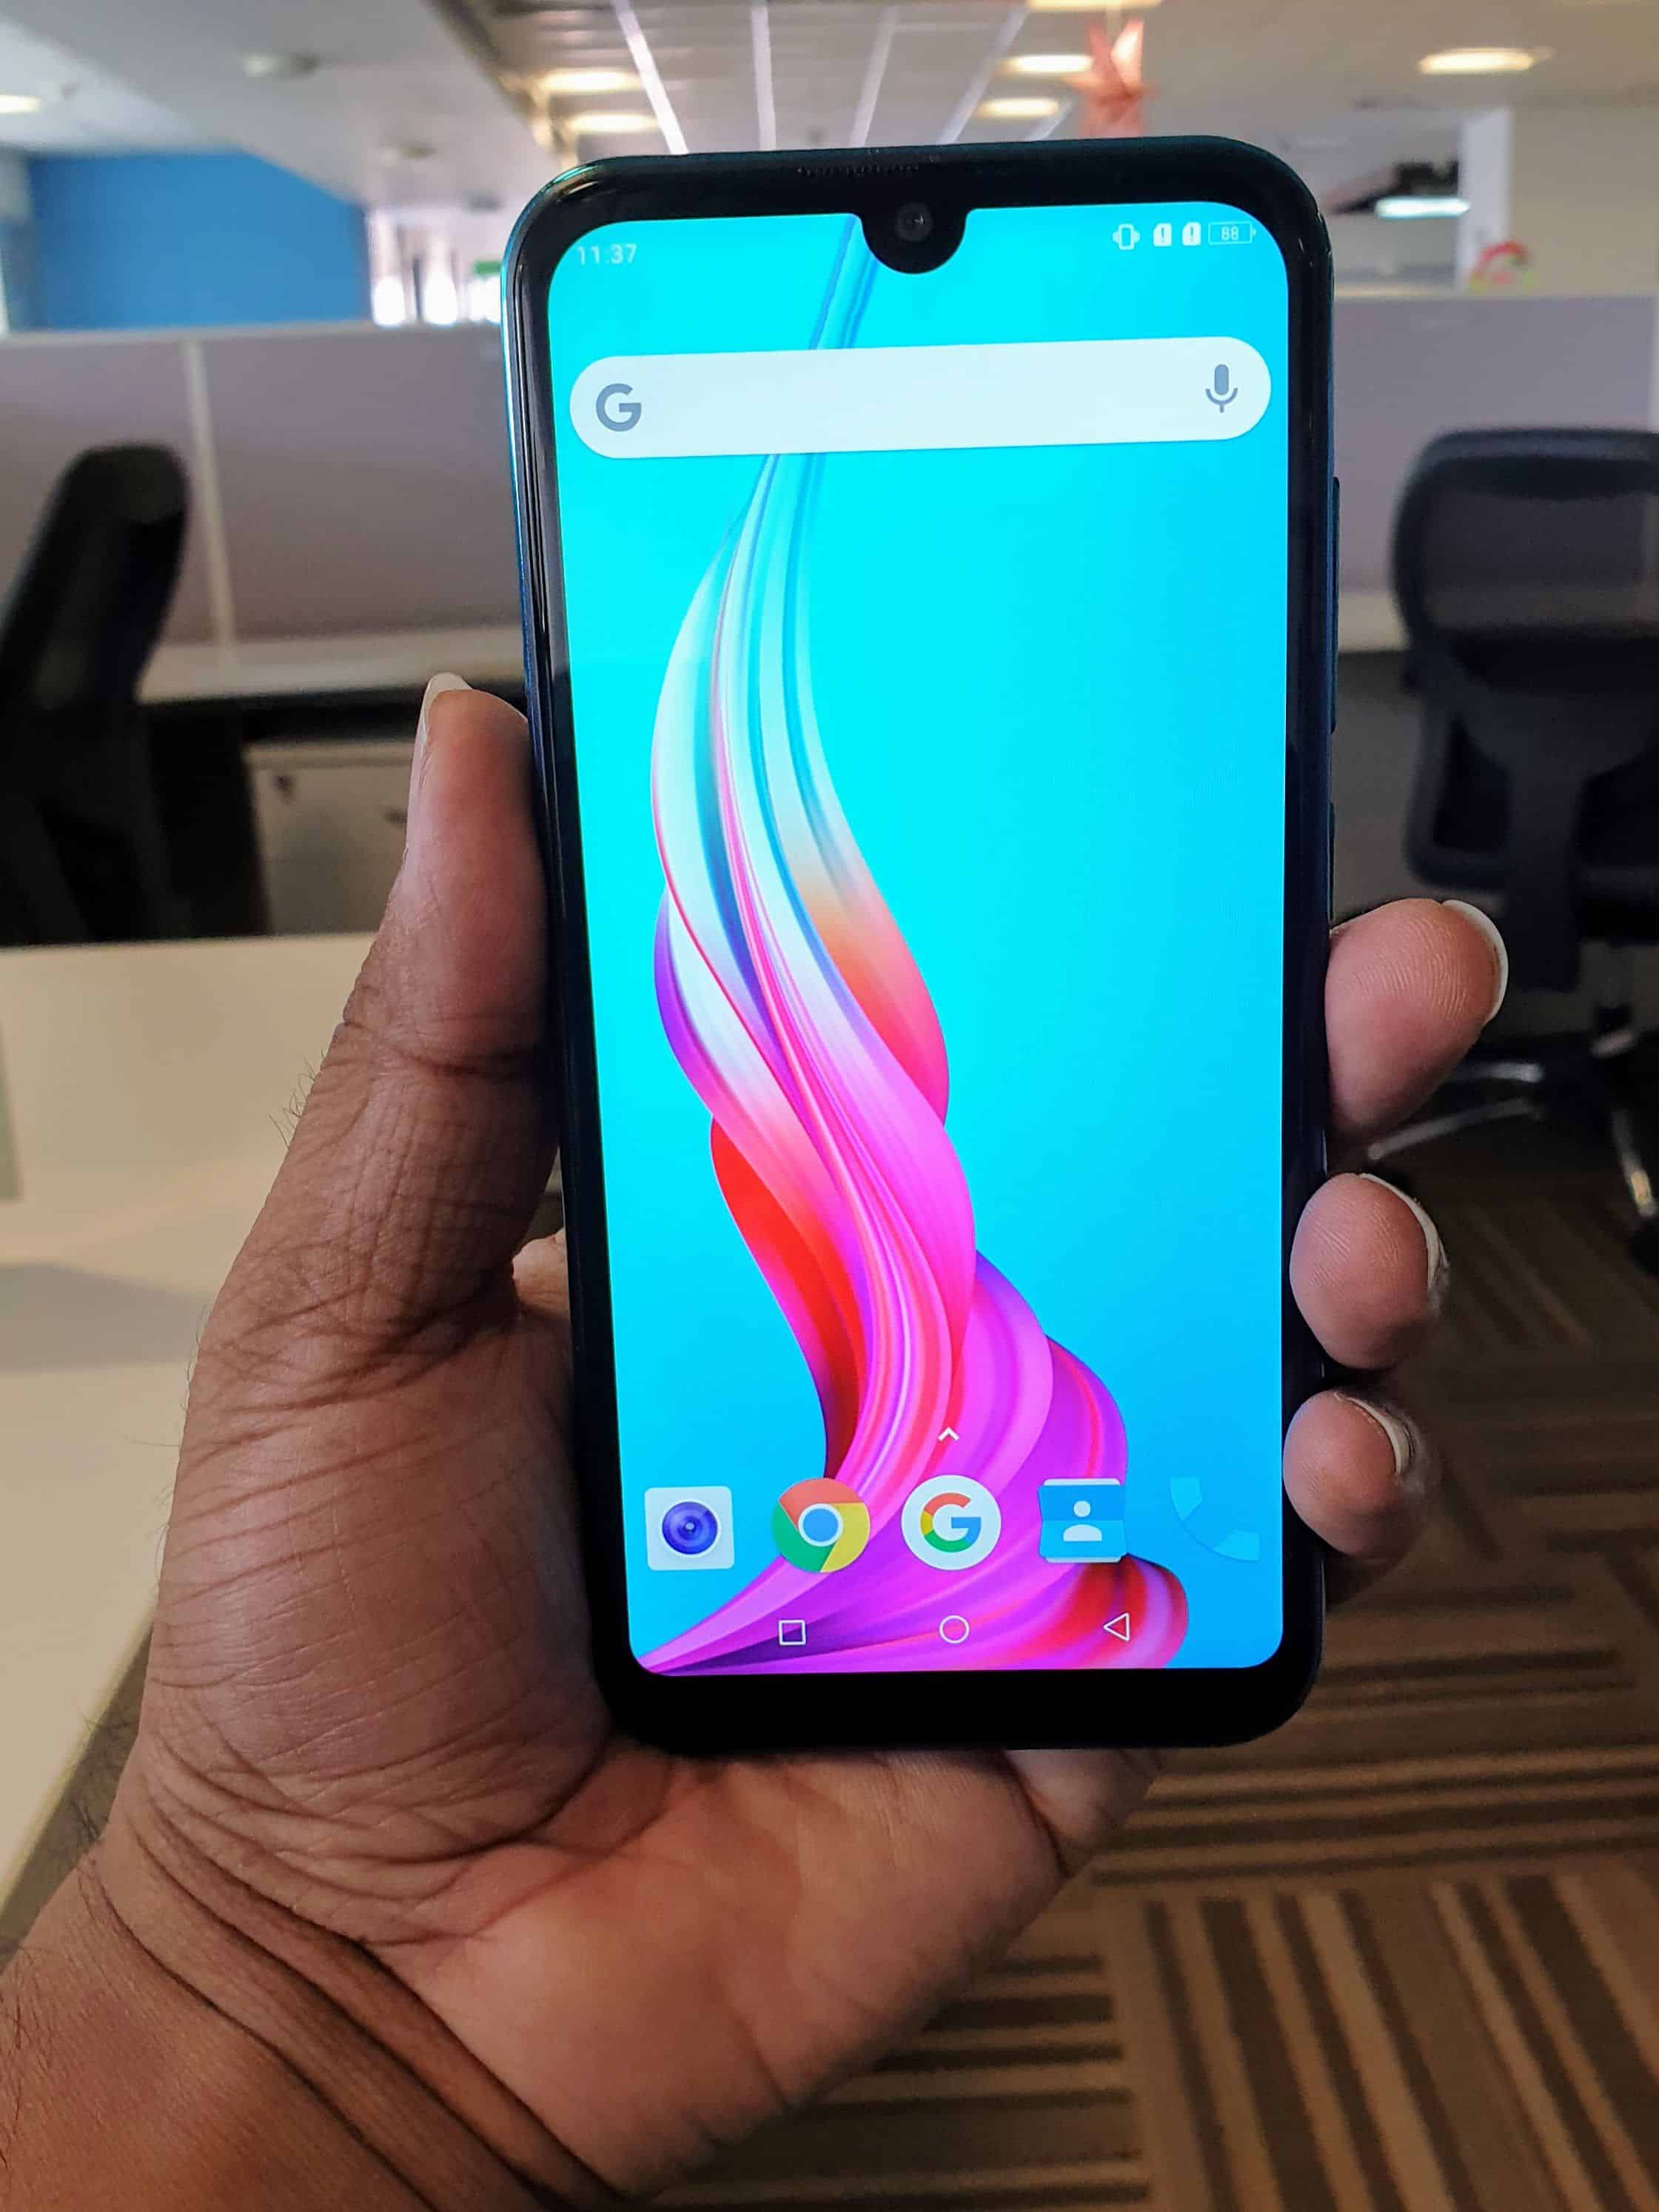 Coolpad Cool 3 Plus Review - Should You Buy this Entry-level Phone? - 1